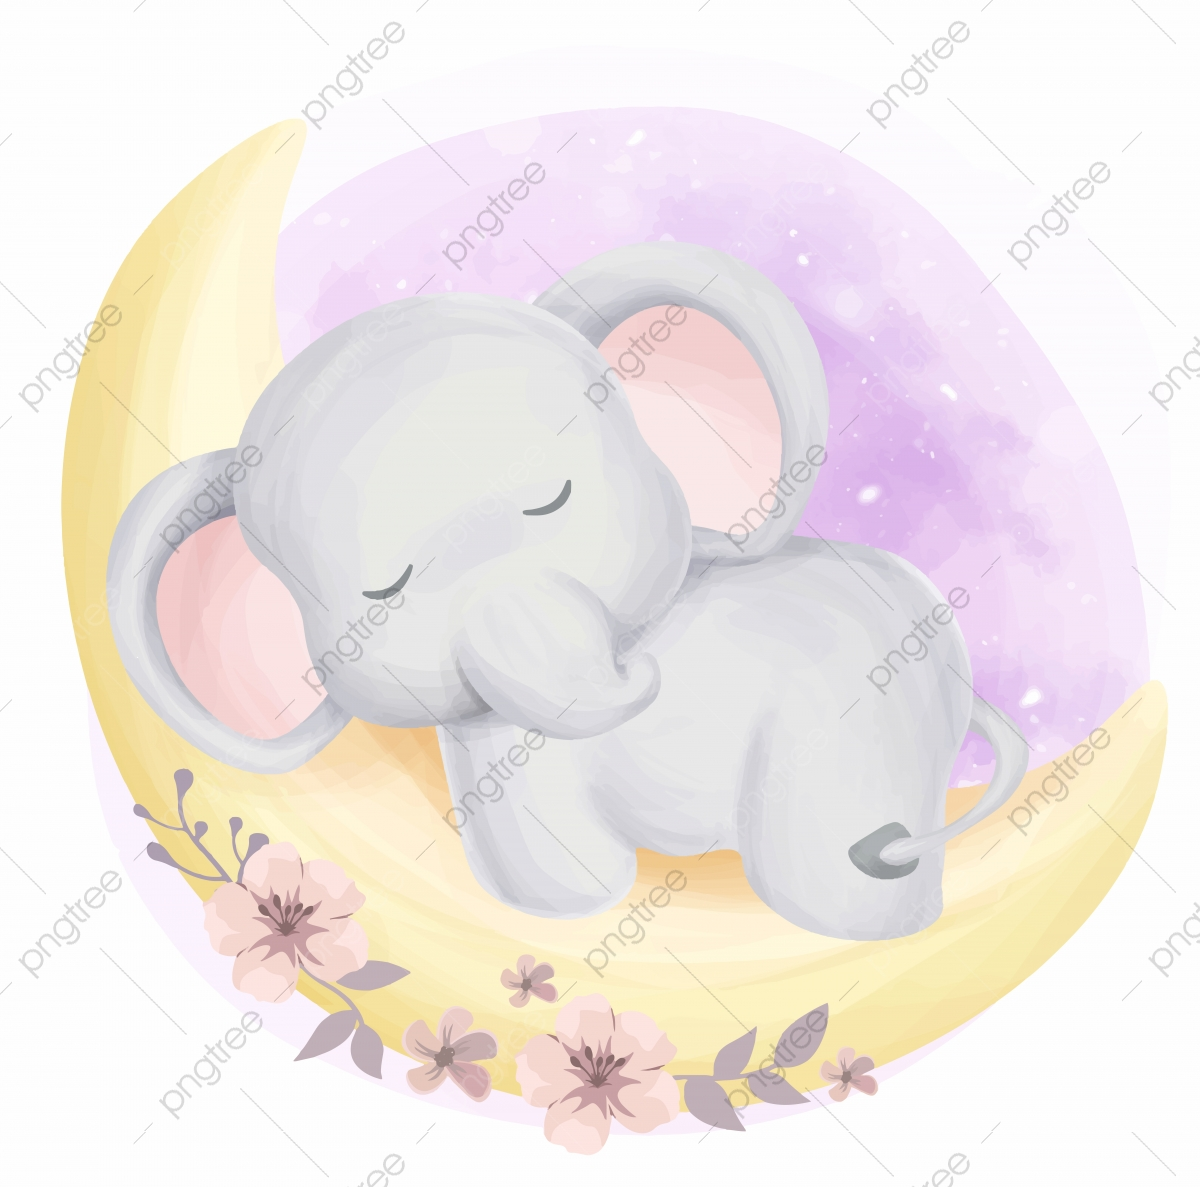 Cute Baby Elephant Sleepy On Moon Baby Elephant Clipart Adorable Animal Png And Vector With Transparent Background For Free Download It's high quality and easy to use. https pngtree com freepng cute baby elephant sleepy on moon 5062920 html